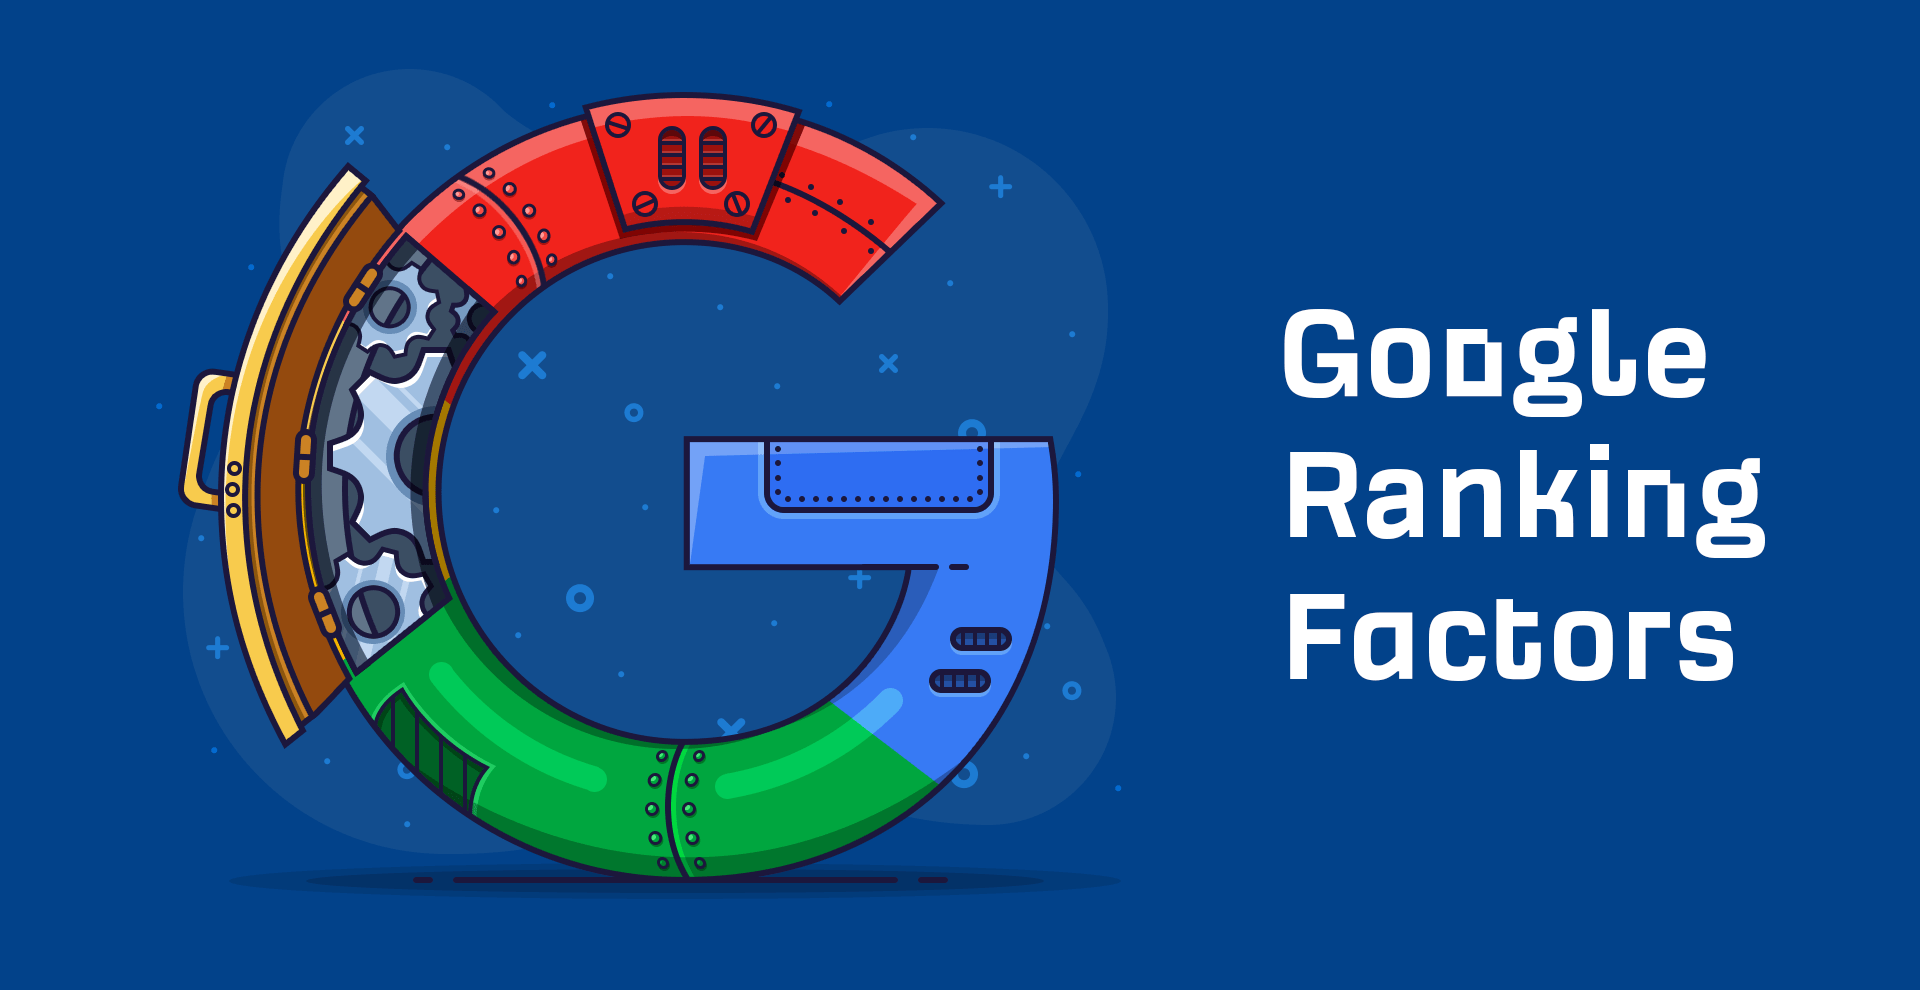 https://ahrefs.com/blog/google-ranking-factors/